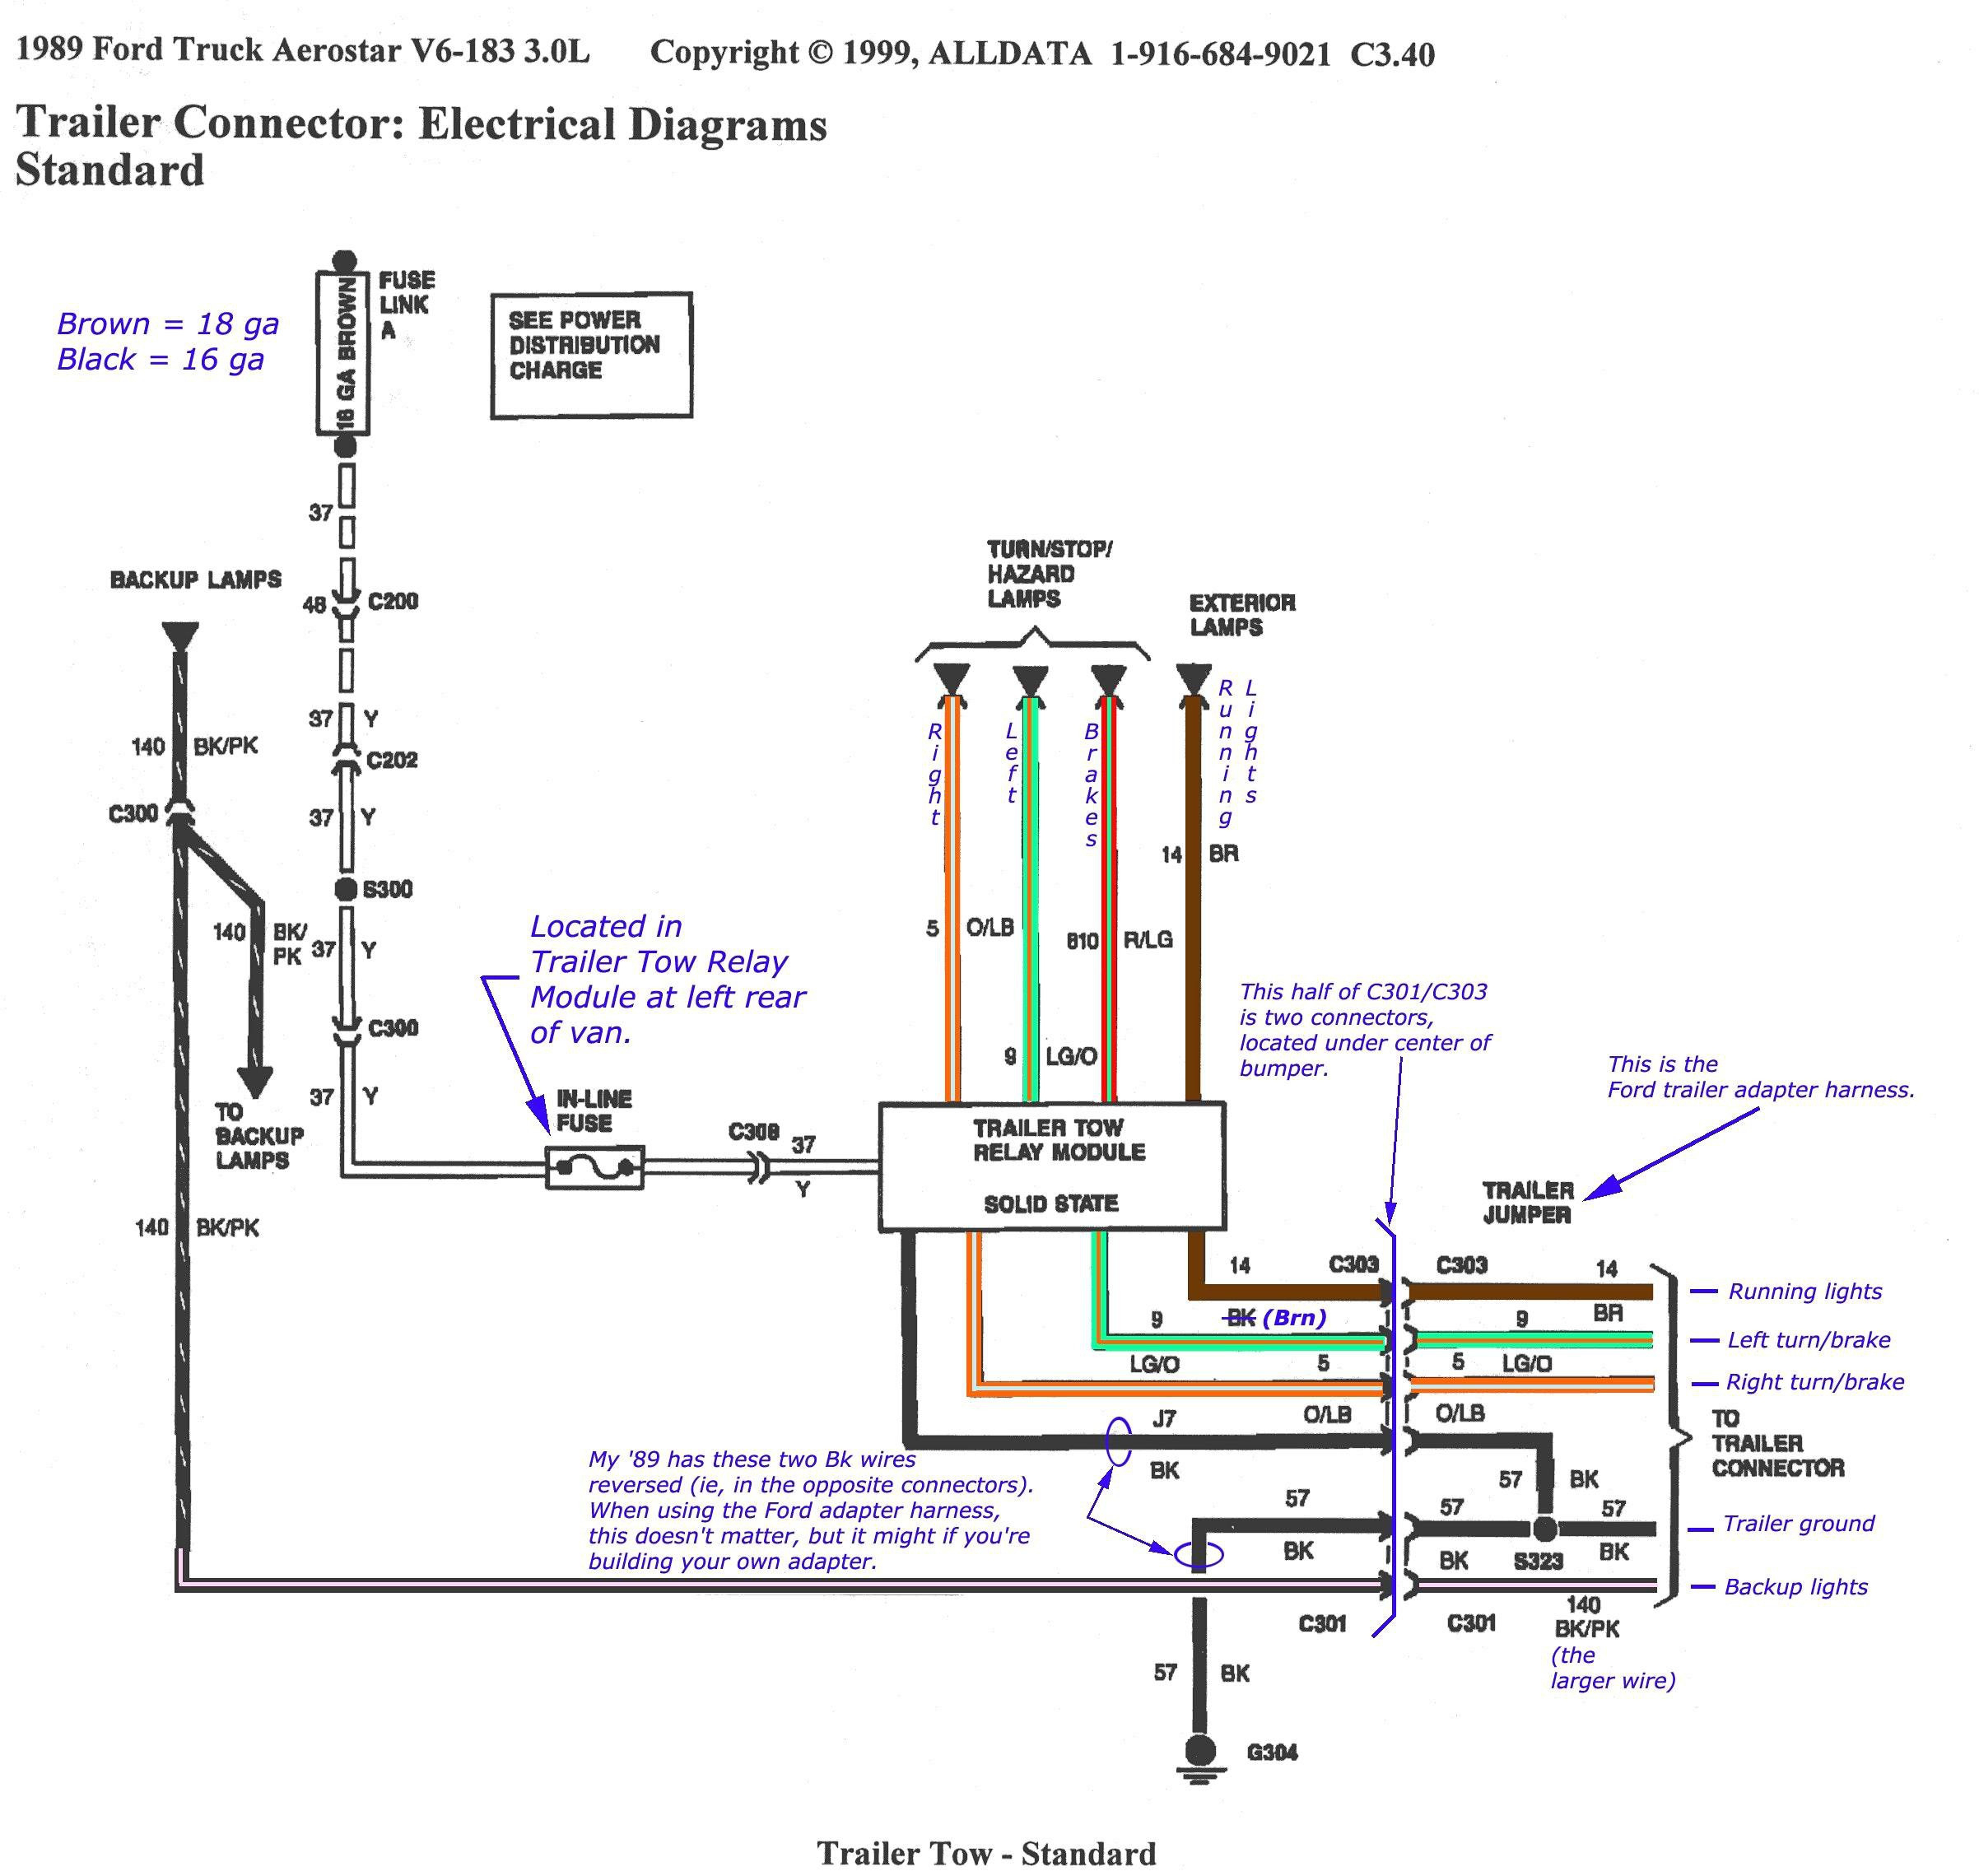 Ford E450 Trailer Wiring - Data Wiring Diagram Today - 2001 Ford F250 Trailer Wiring Diagram